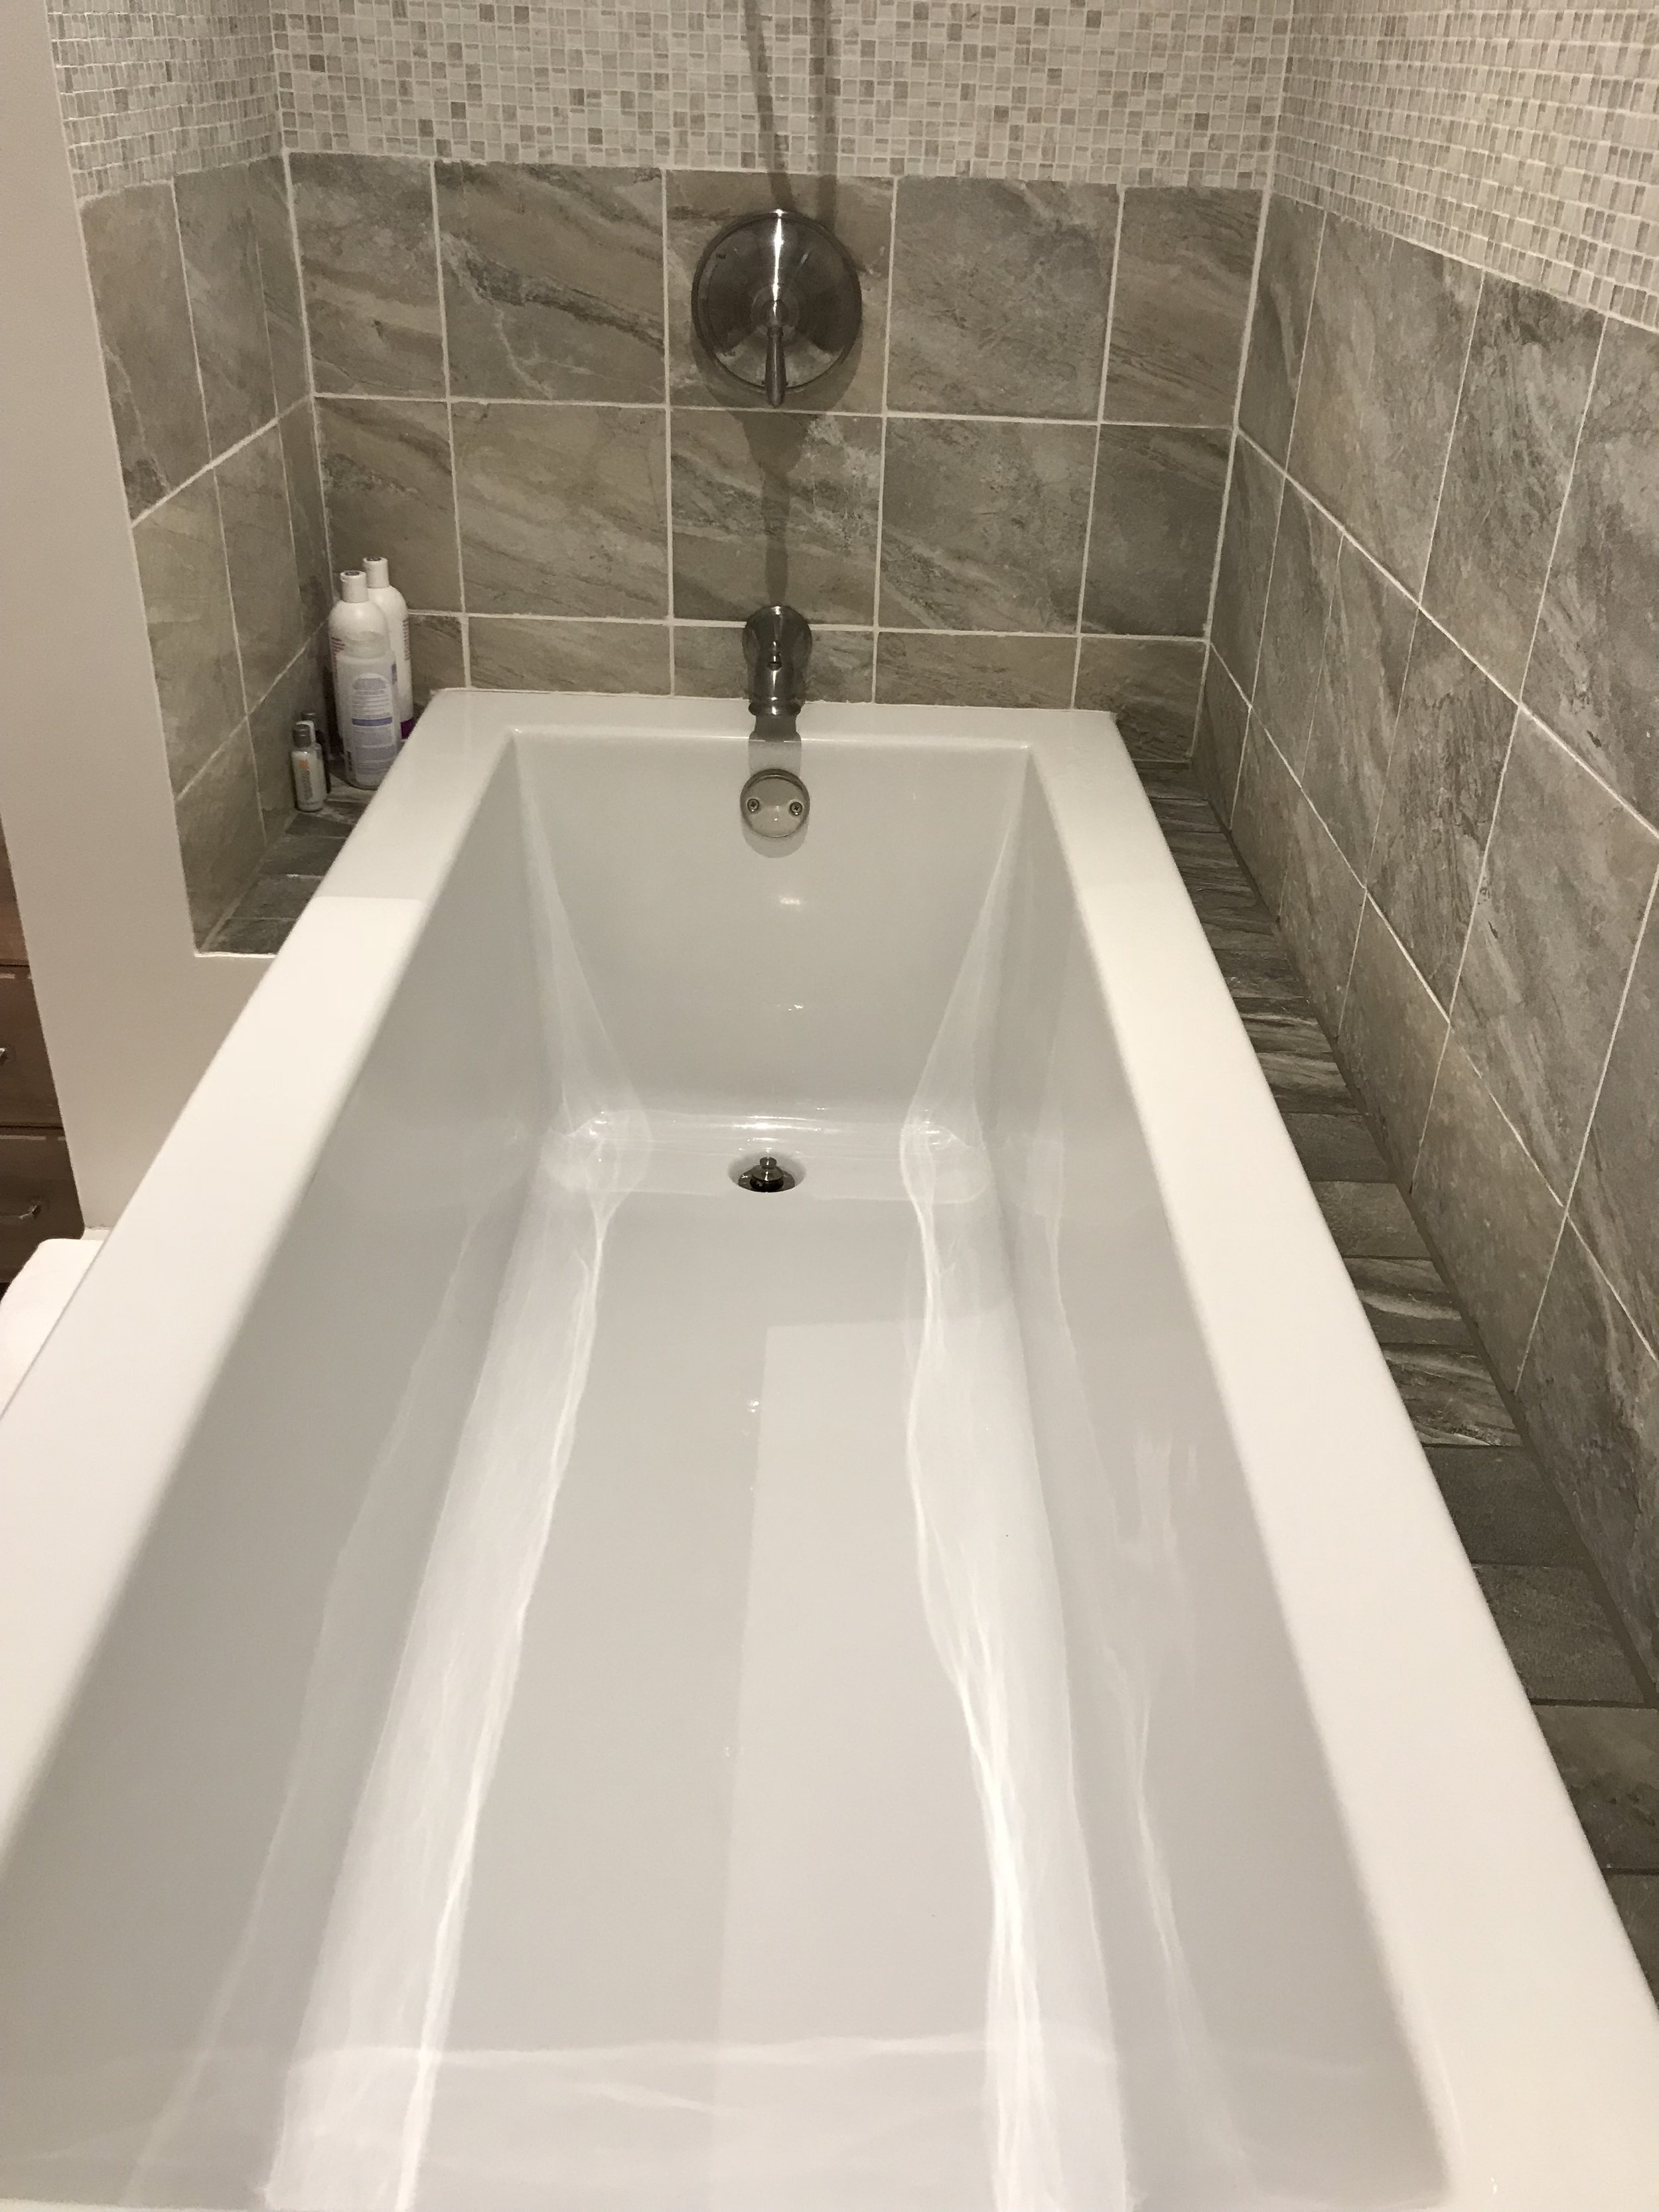 Bathtub in guest room 2 (family room)